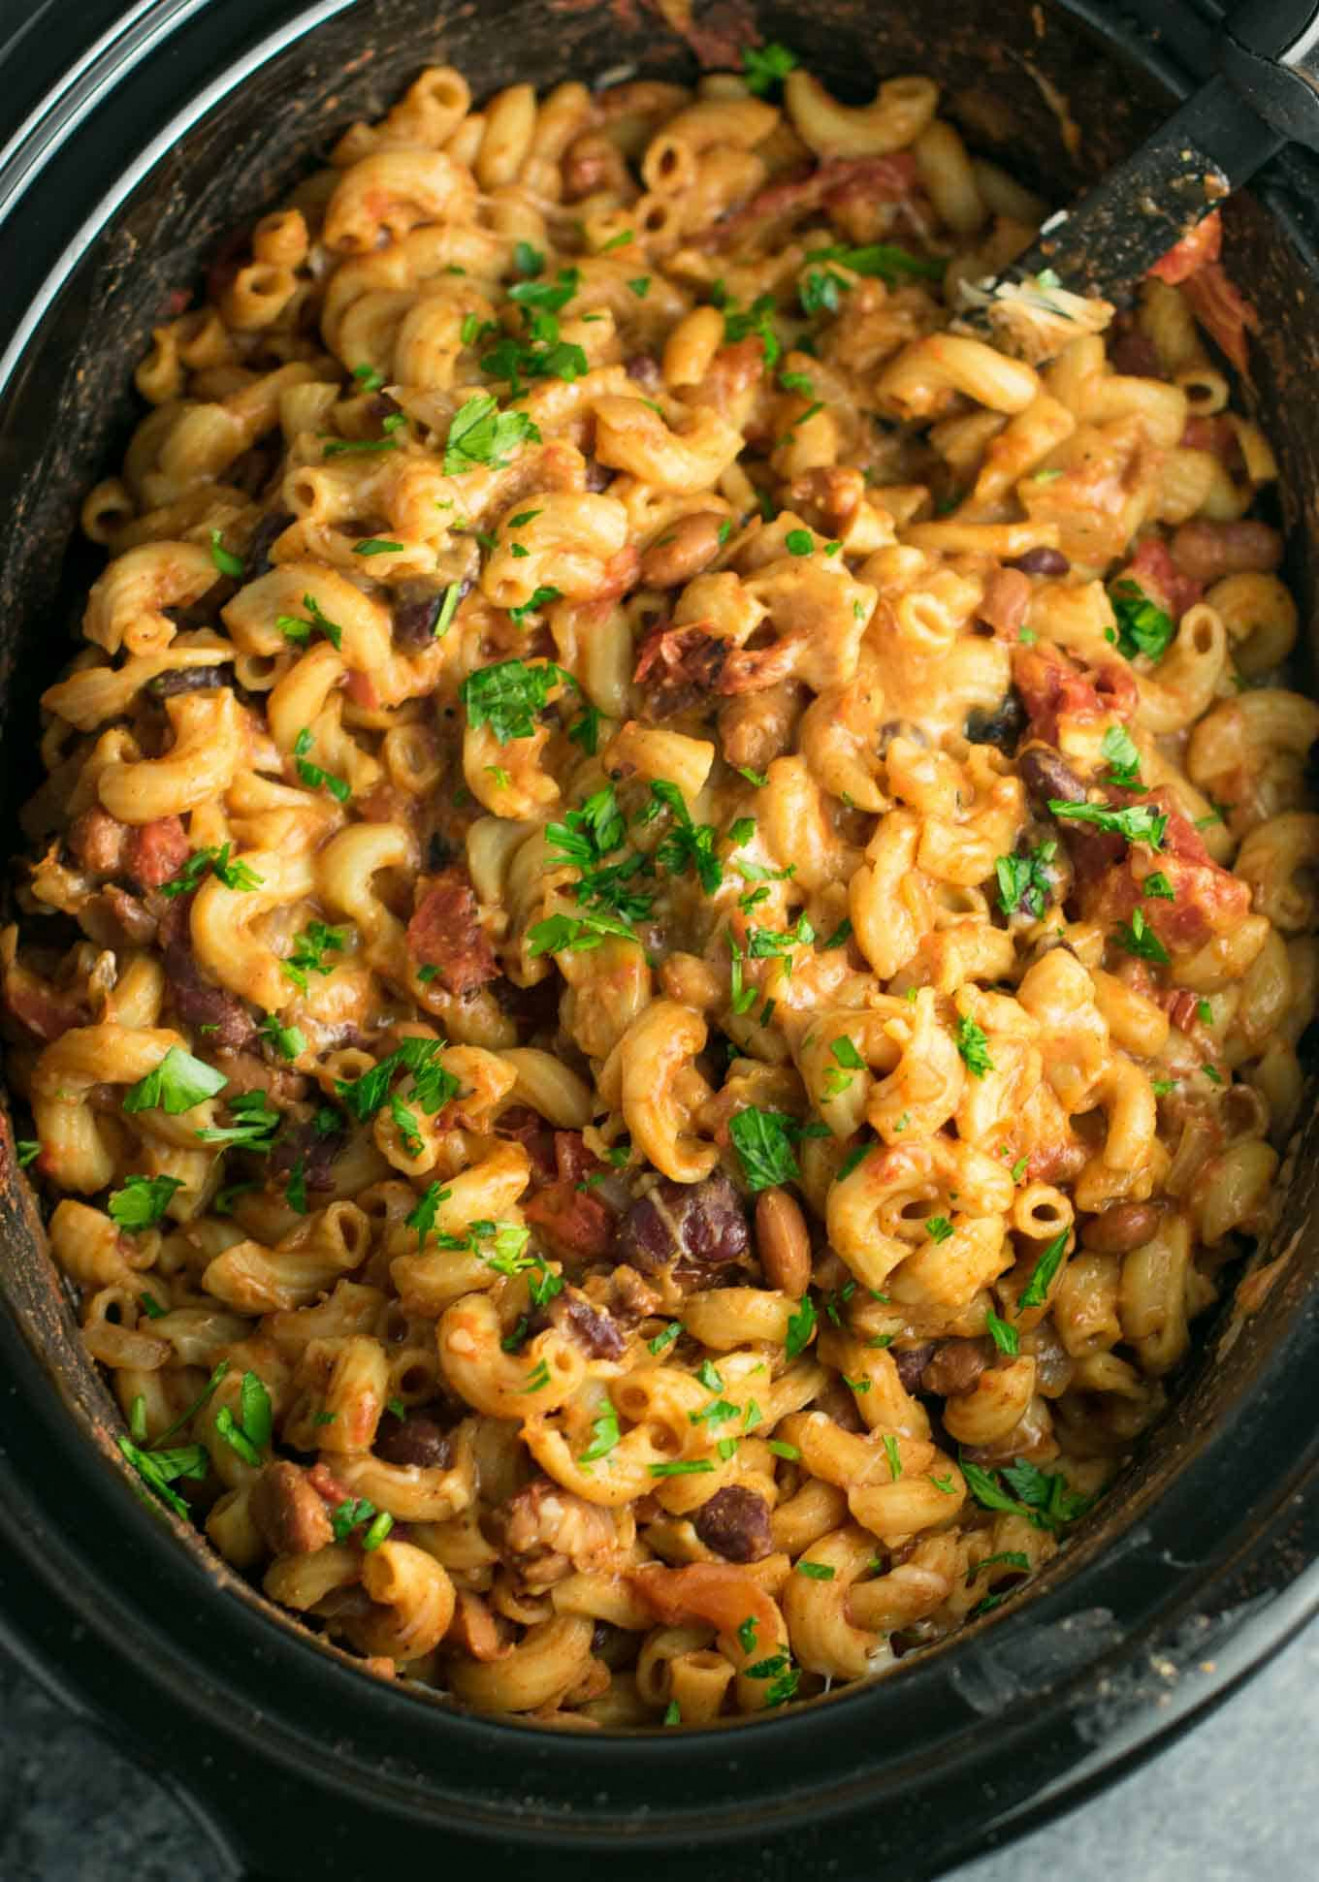 Slow Cooker Vegetarian Chili Mac Recipe - Build Your Bite - Slow Cooker Recipes Nz Vegetarian